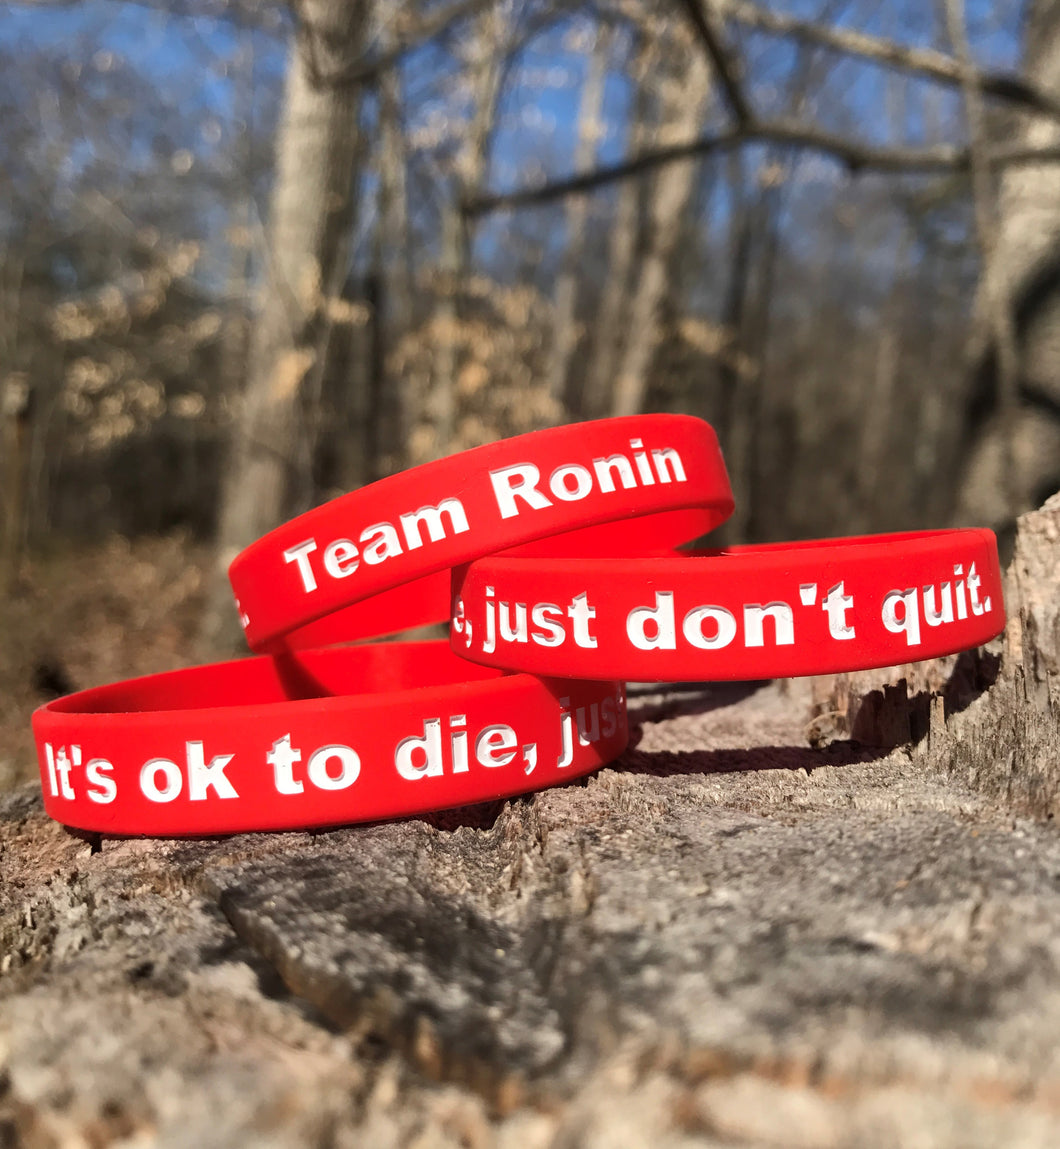 It's ok to die, just don't quit.